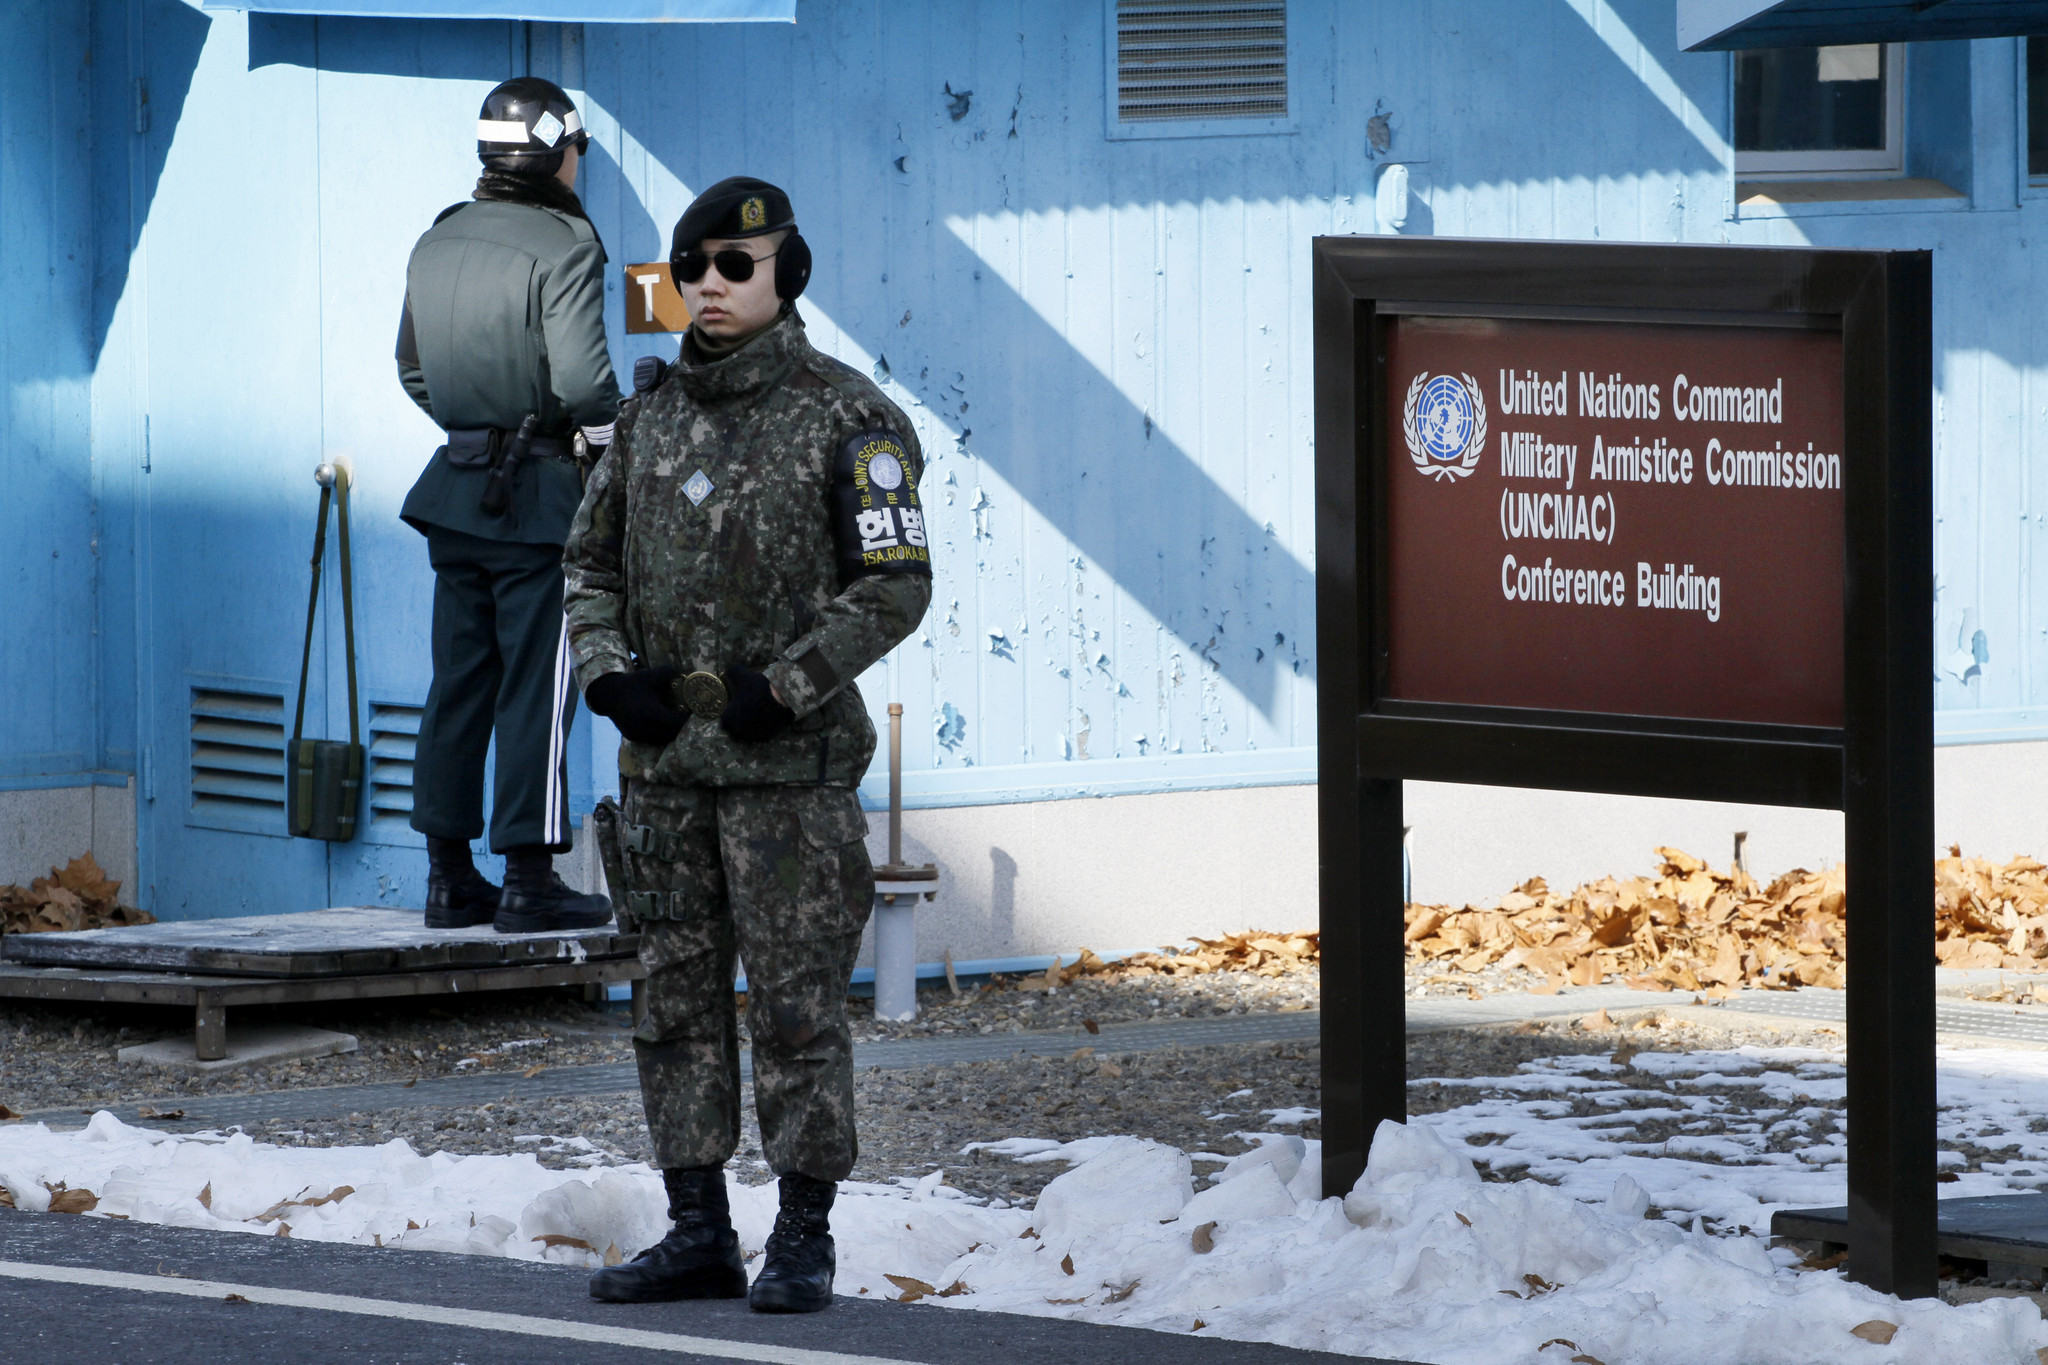 SOUTH KOREA FEBRUARY 6, 2018 -- South Korean Army member in front and South Korean Military Police